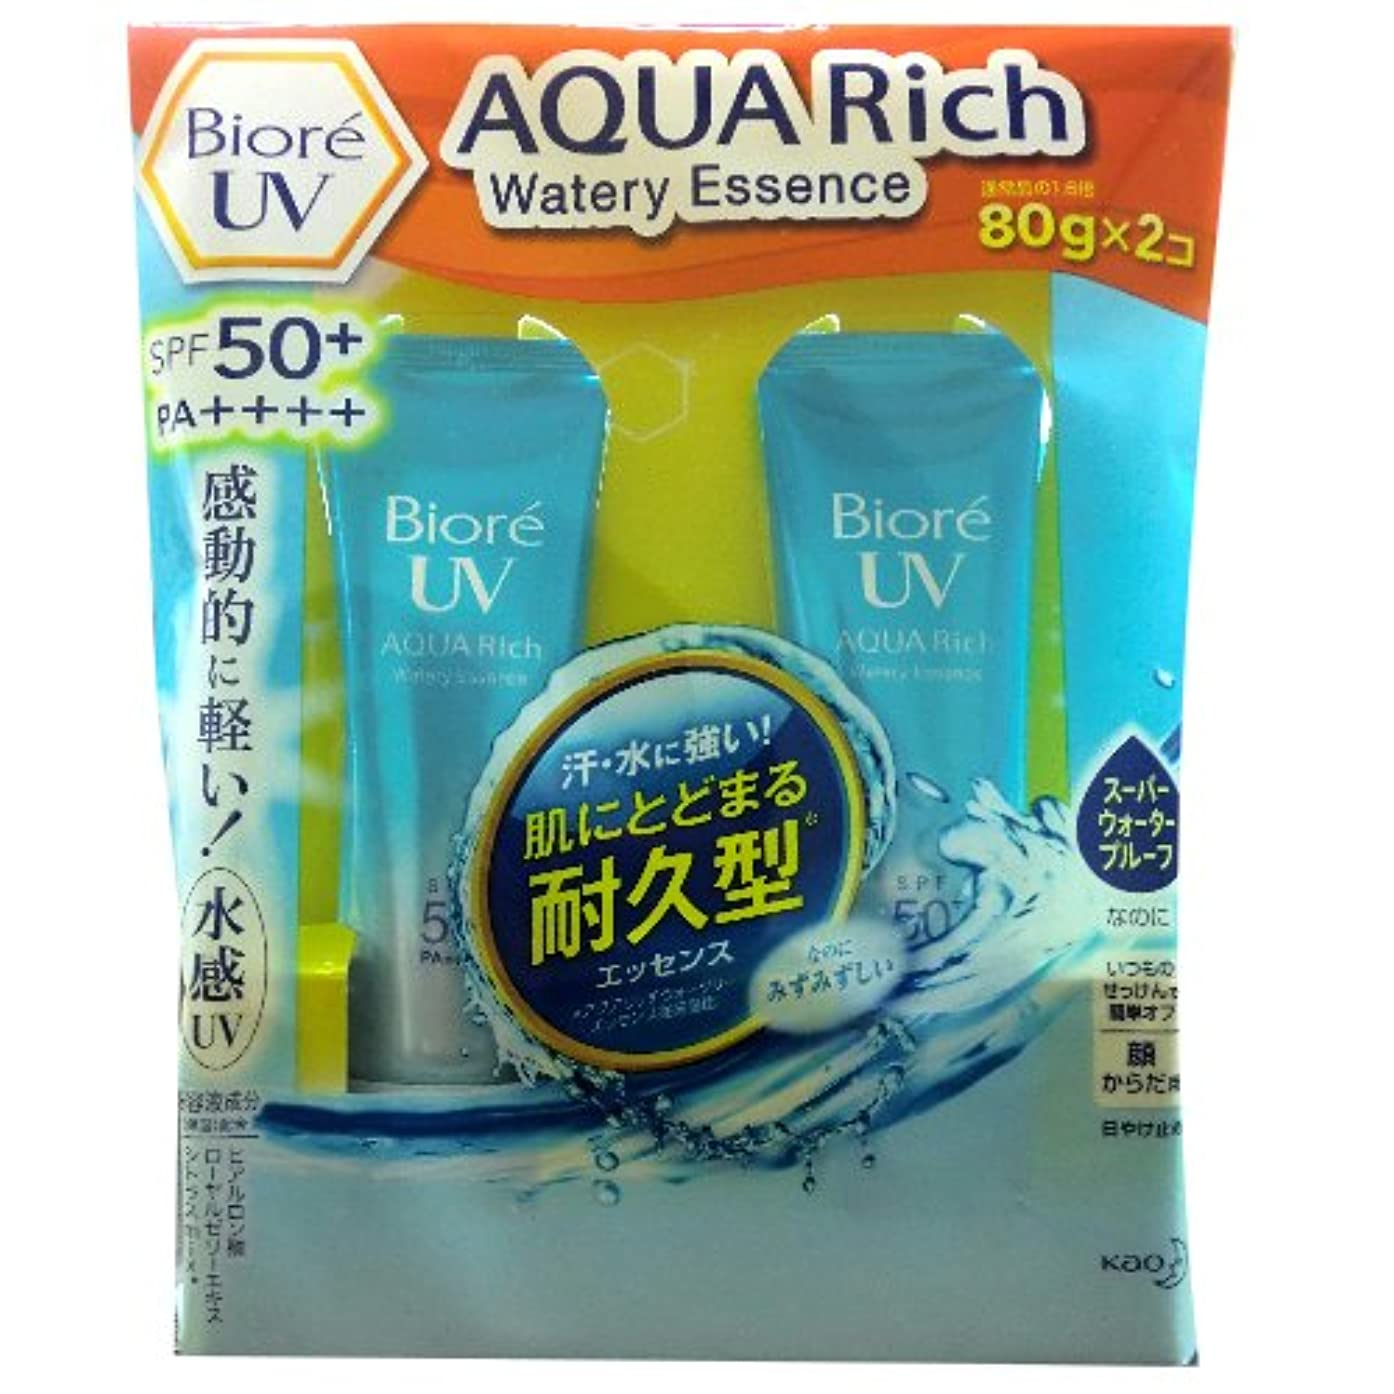 私の権限を与える障害Biore UV AQUA Rich Watery Essence 80g×2コ